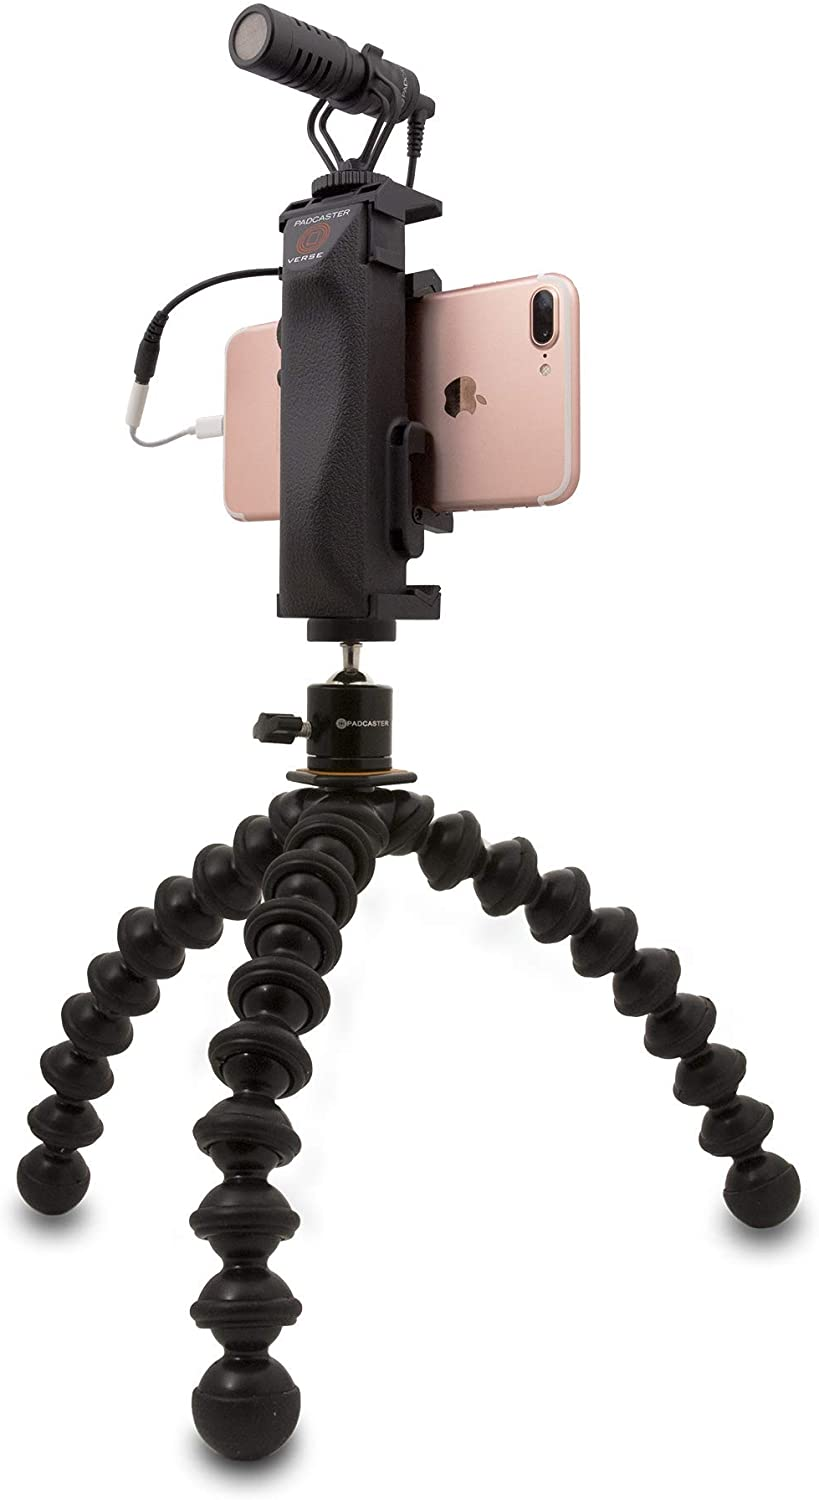 The Padcaster Verse Vlogger for Smartphones